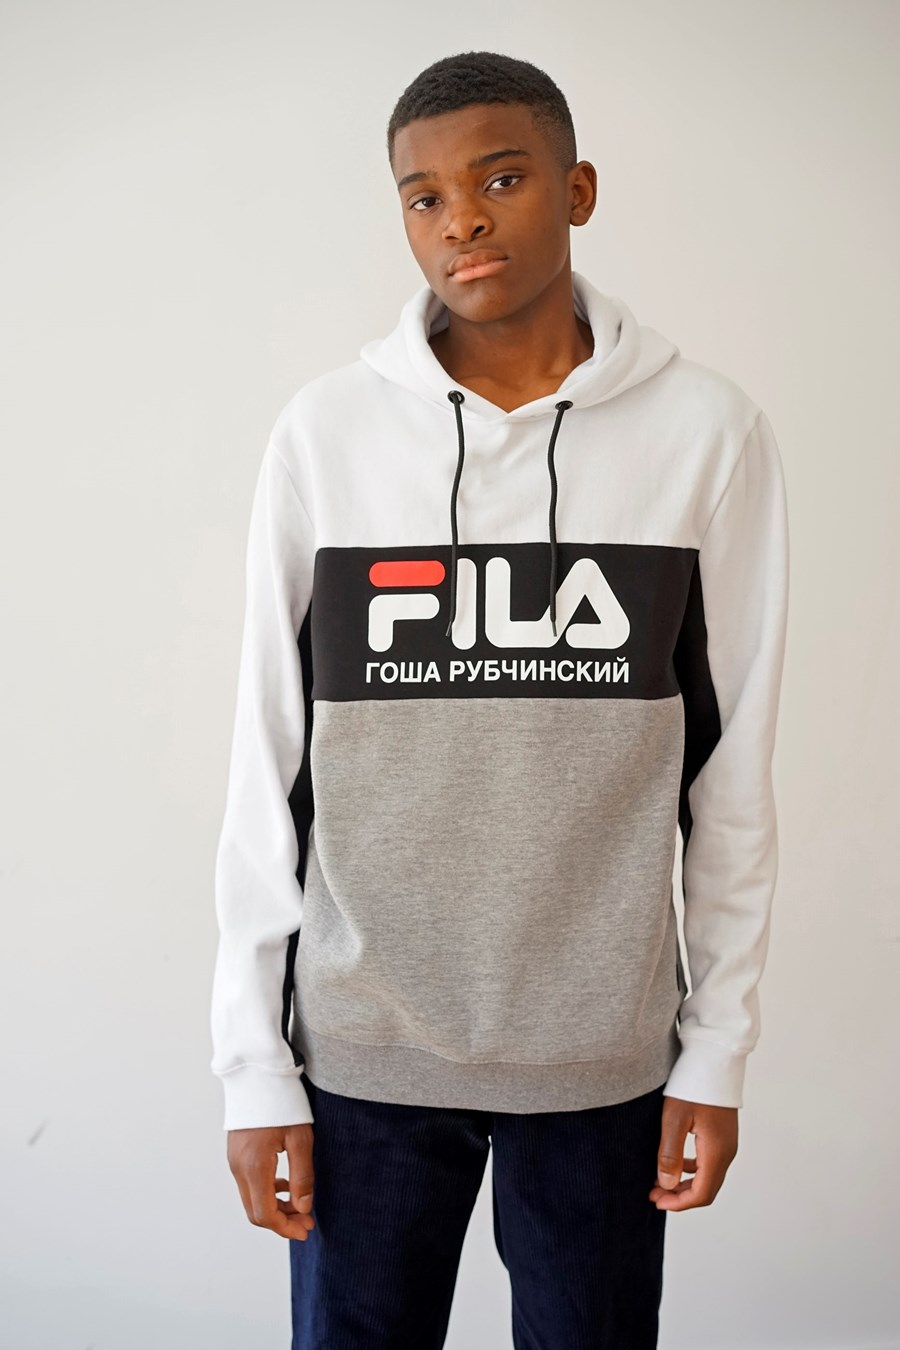 Gosha Rubchinskiy SS17 Lookbook Featuring FILA and Kappa Collab